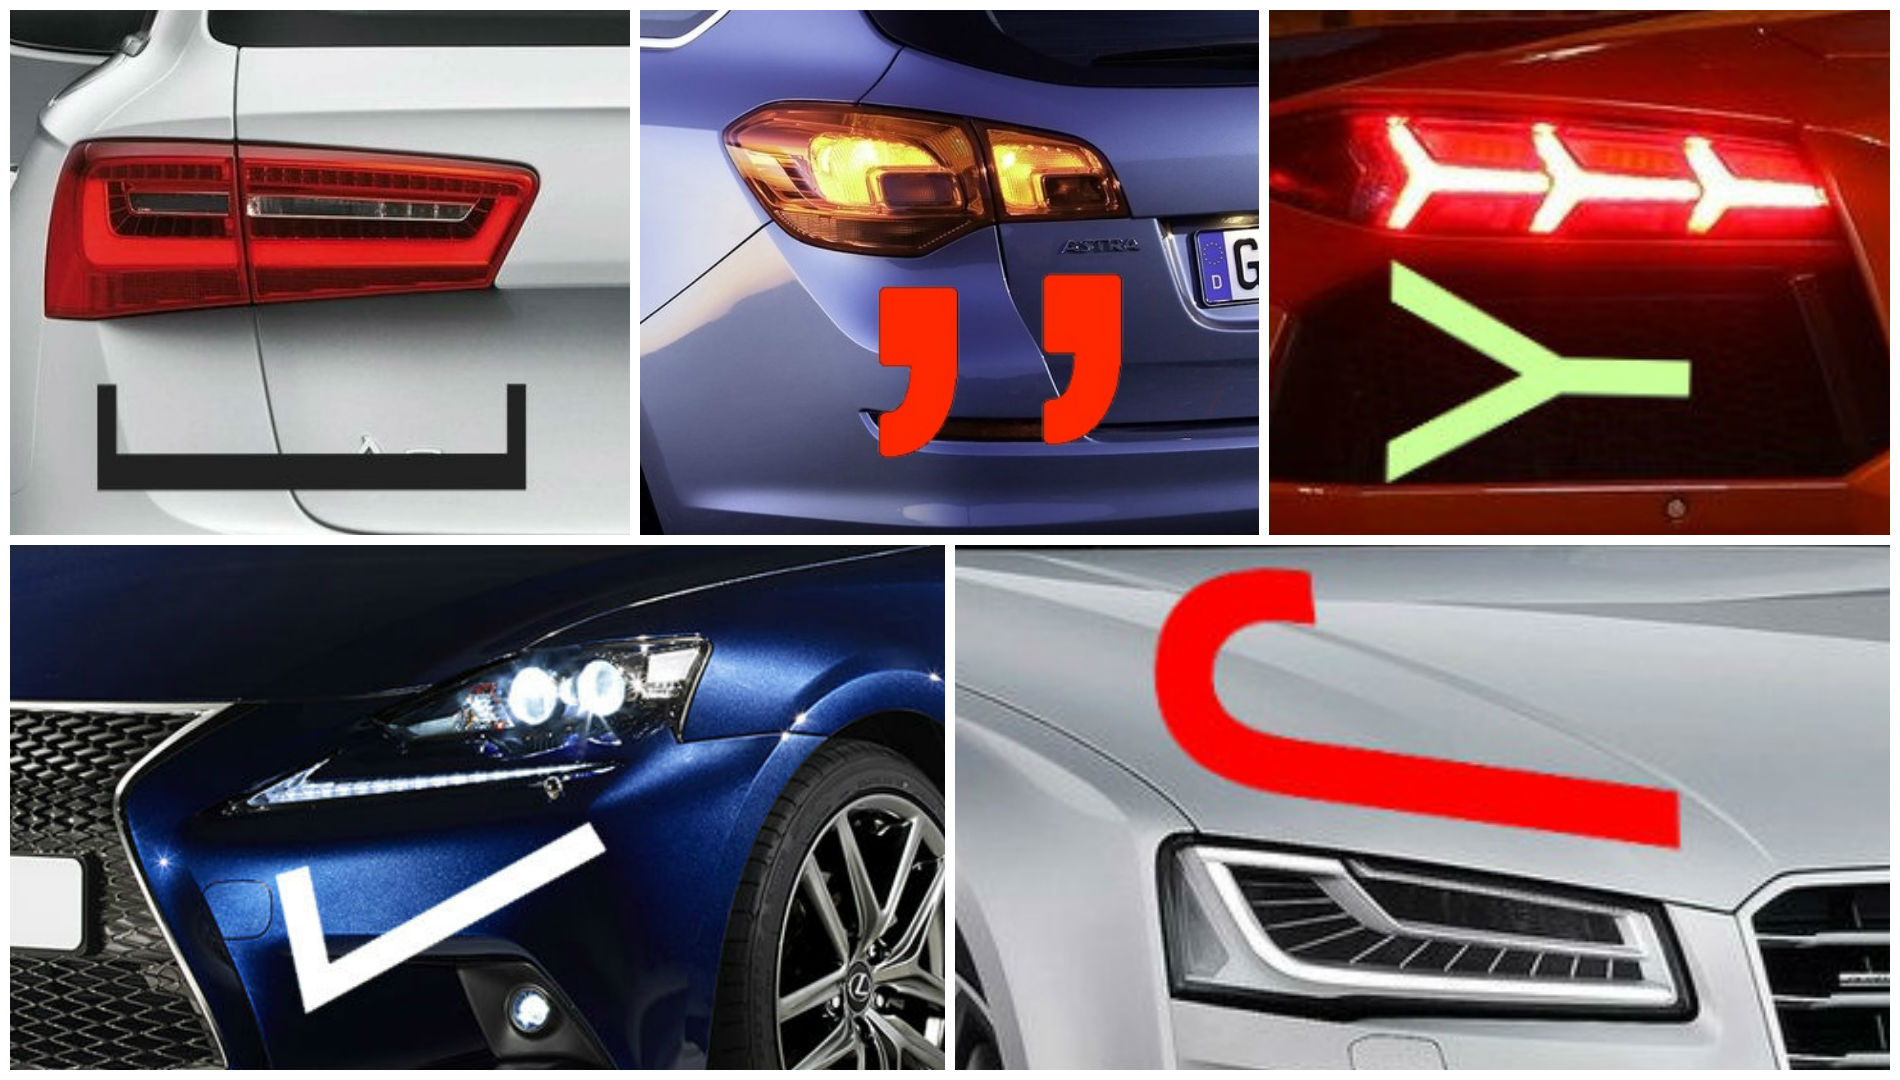 car headlight and taillight design takes inspiration from